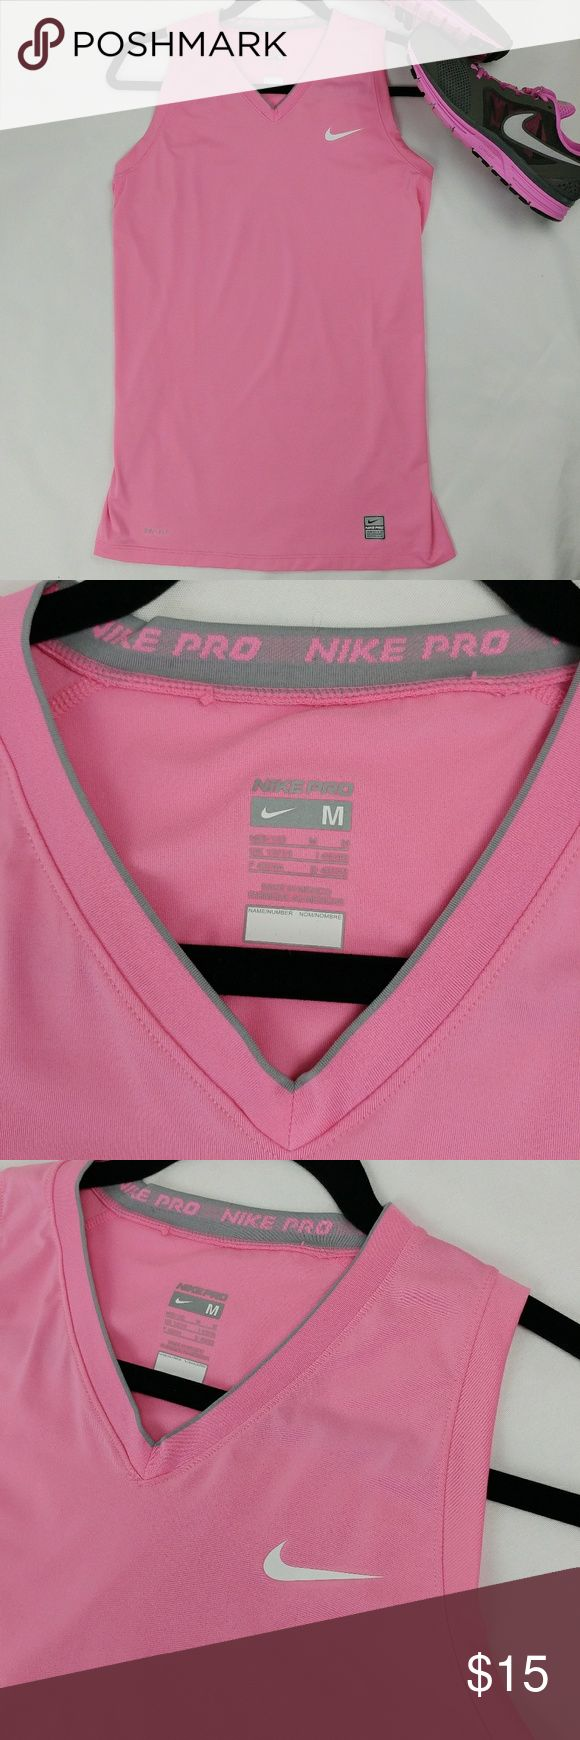 "Nike Pro workout tanktop womens Nike Pro womens workout tanktop Size M (8-10) In great condition. Tiny hole on the back of the collar from where the tag used to be. Armpit to armpit measuring laying flat across 17"" Length 28"" 84% polyester 16% spandex Nike Tops Tank Tops"